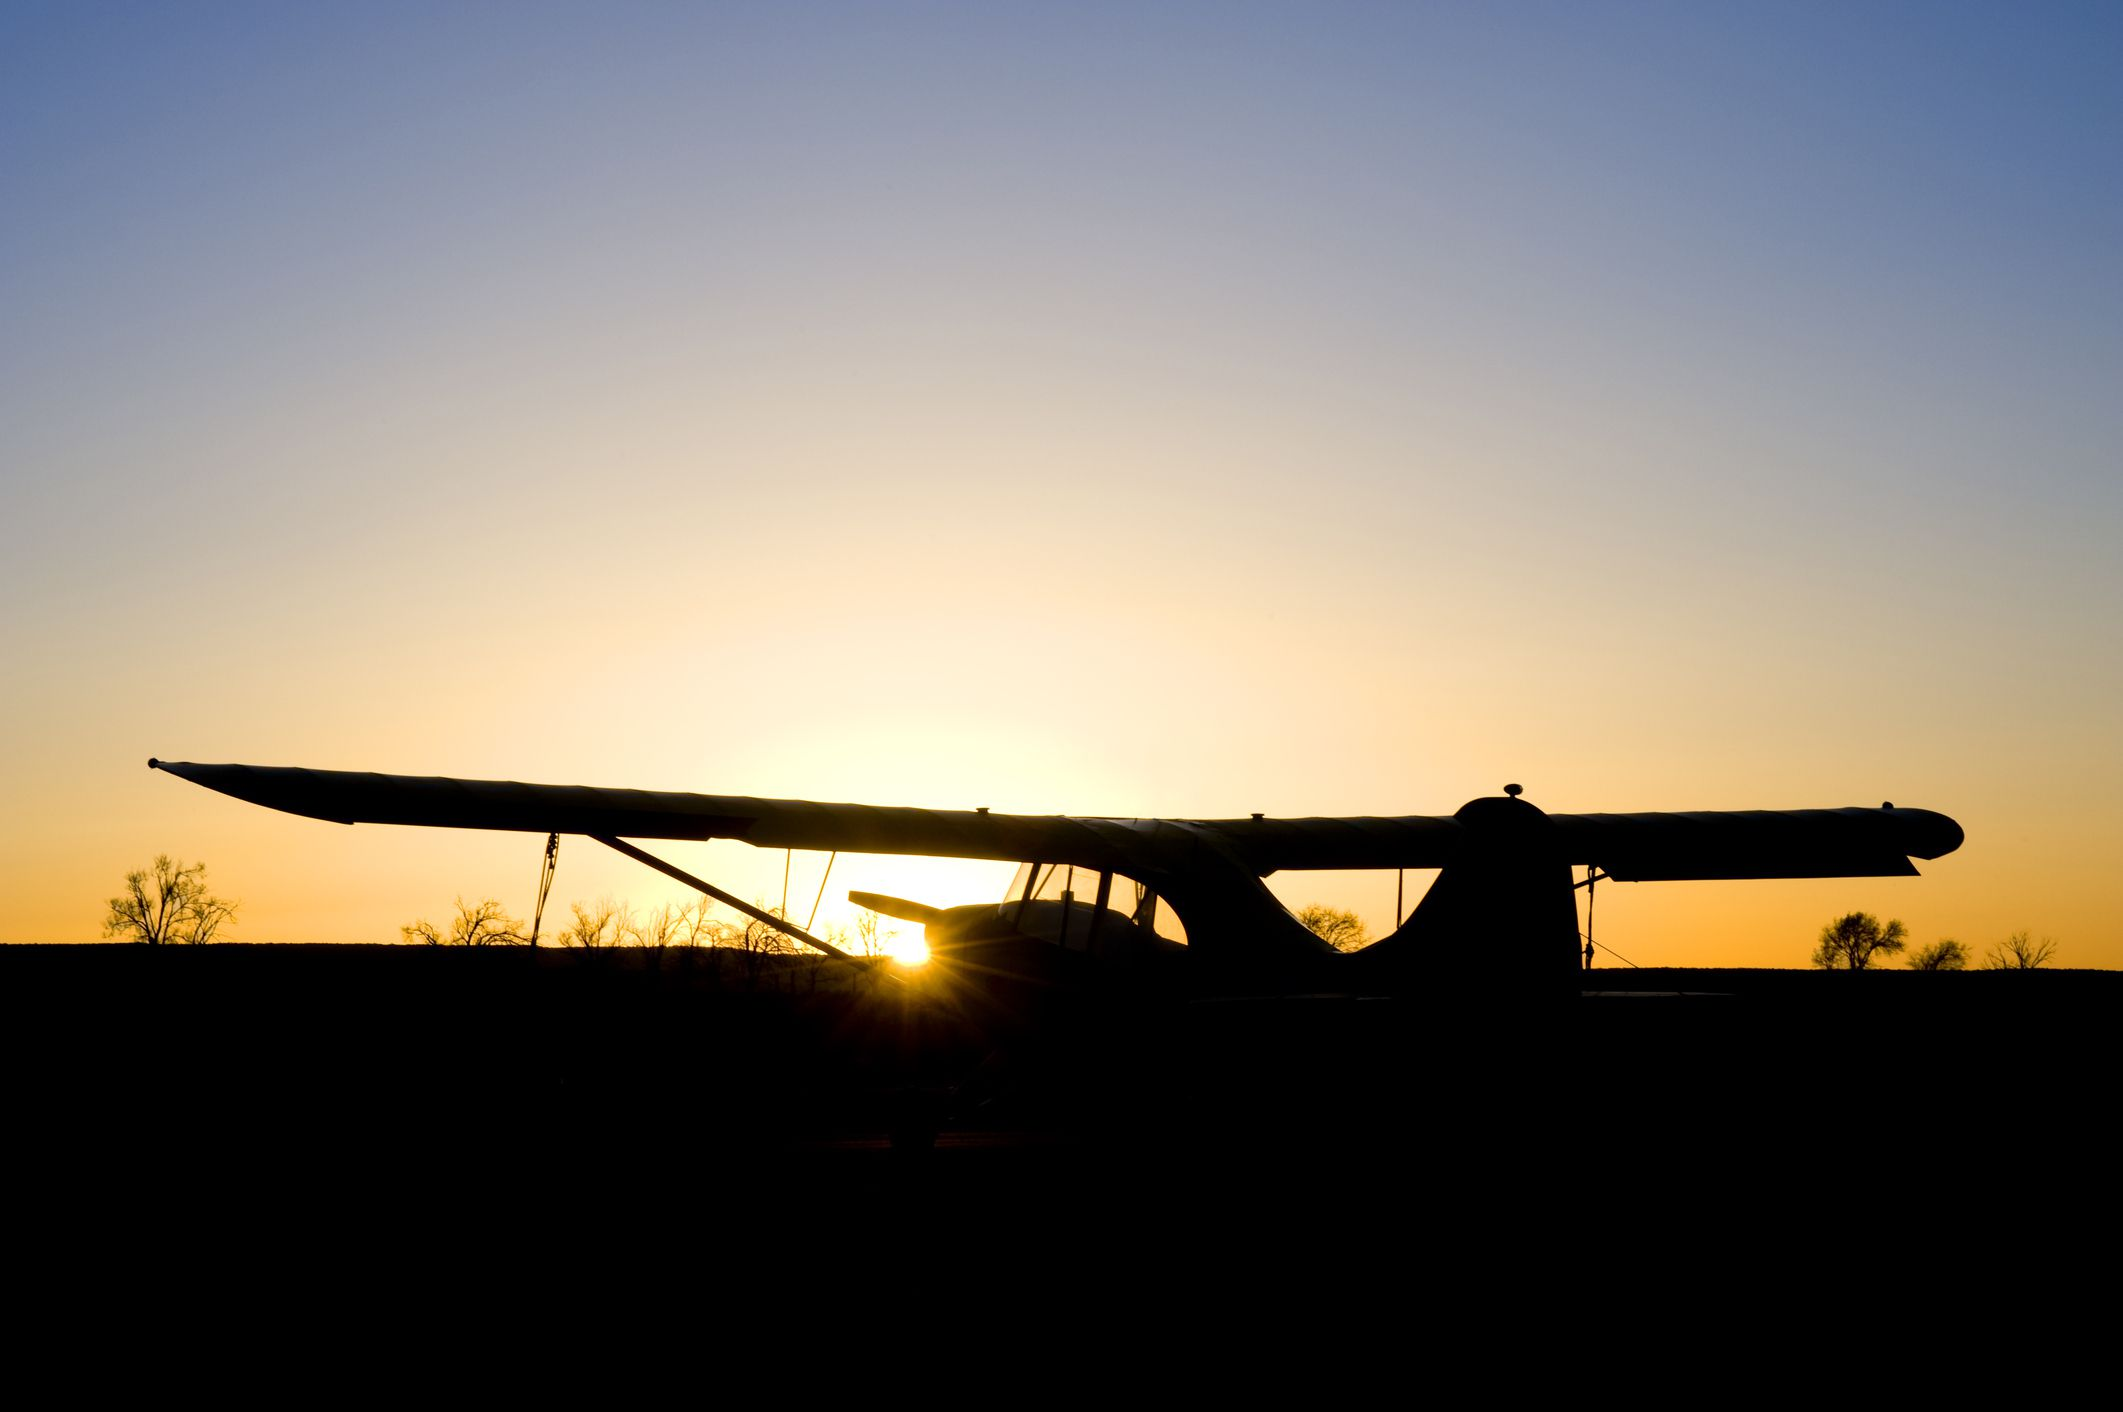 How to Plan a VFR Cross Country Flight at Night